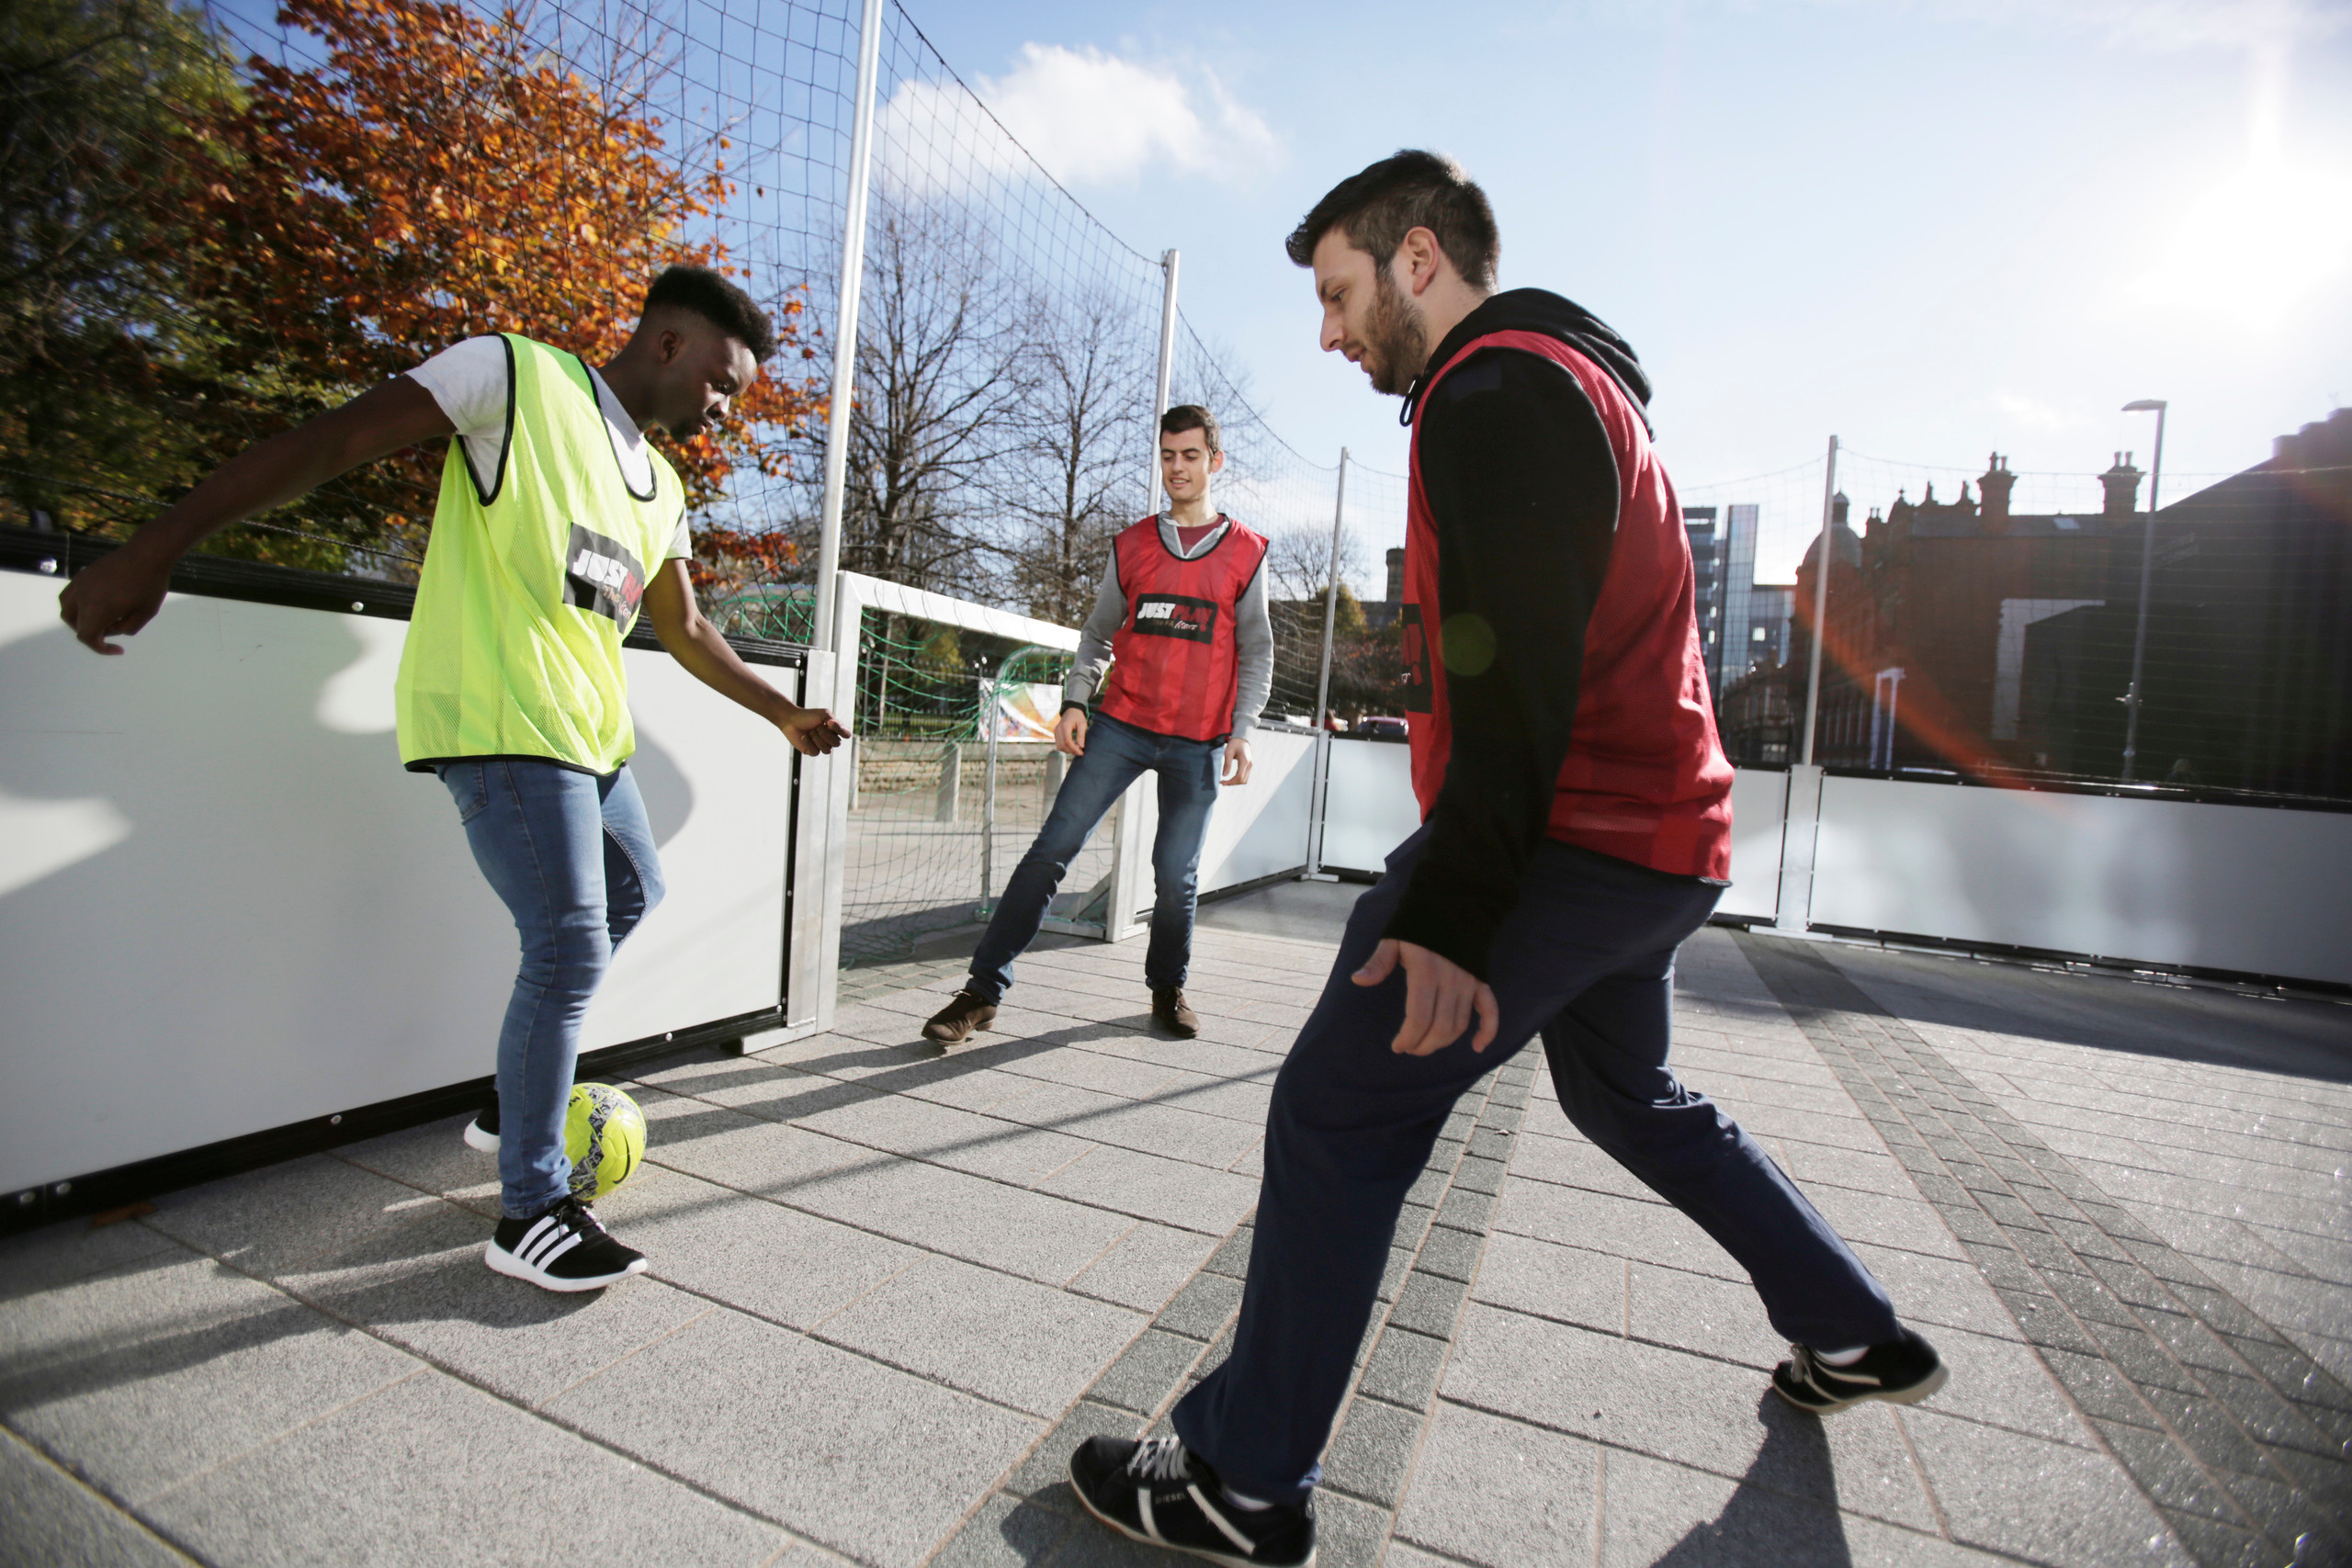 Students enjoying a Futsal session as part of 'Active Campus'